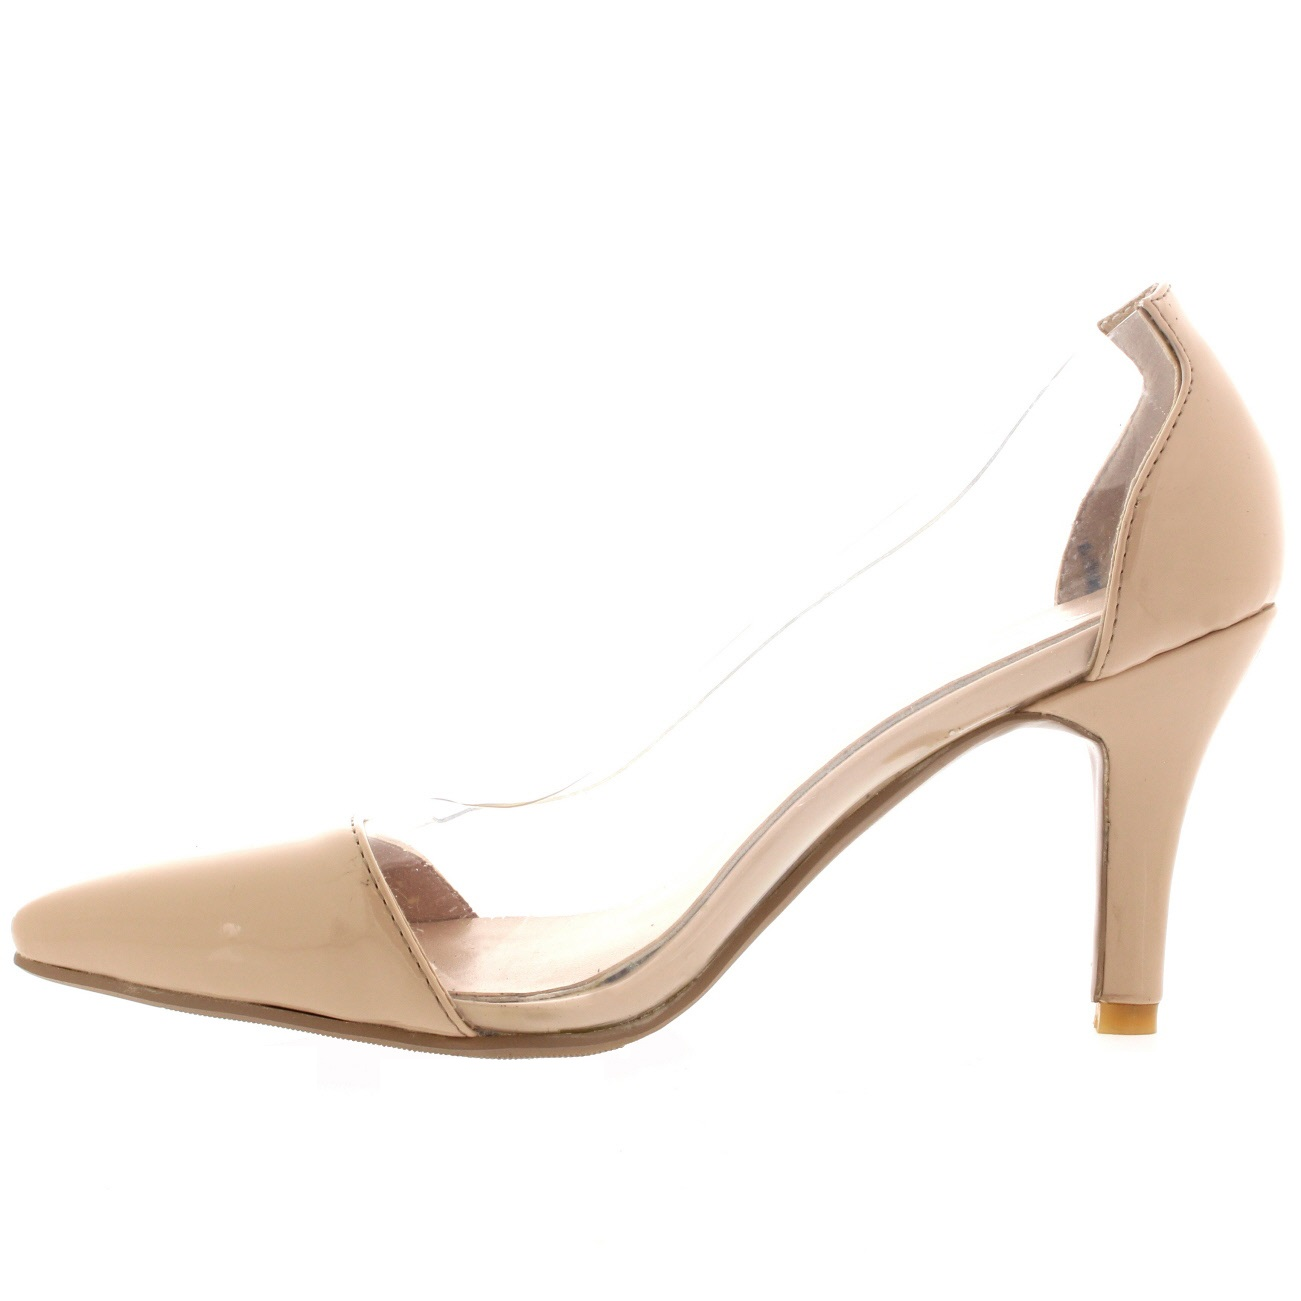 31137bdd973 Womens Pointed Toe Perspex Clear Mid Heels Fashion Cut Out Court ...